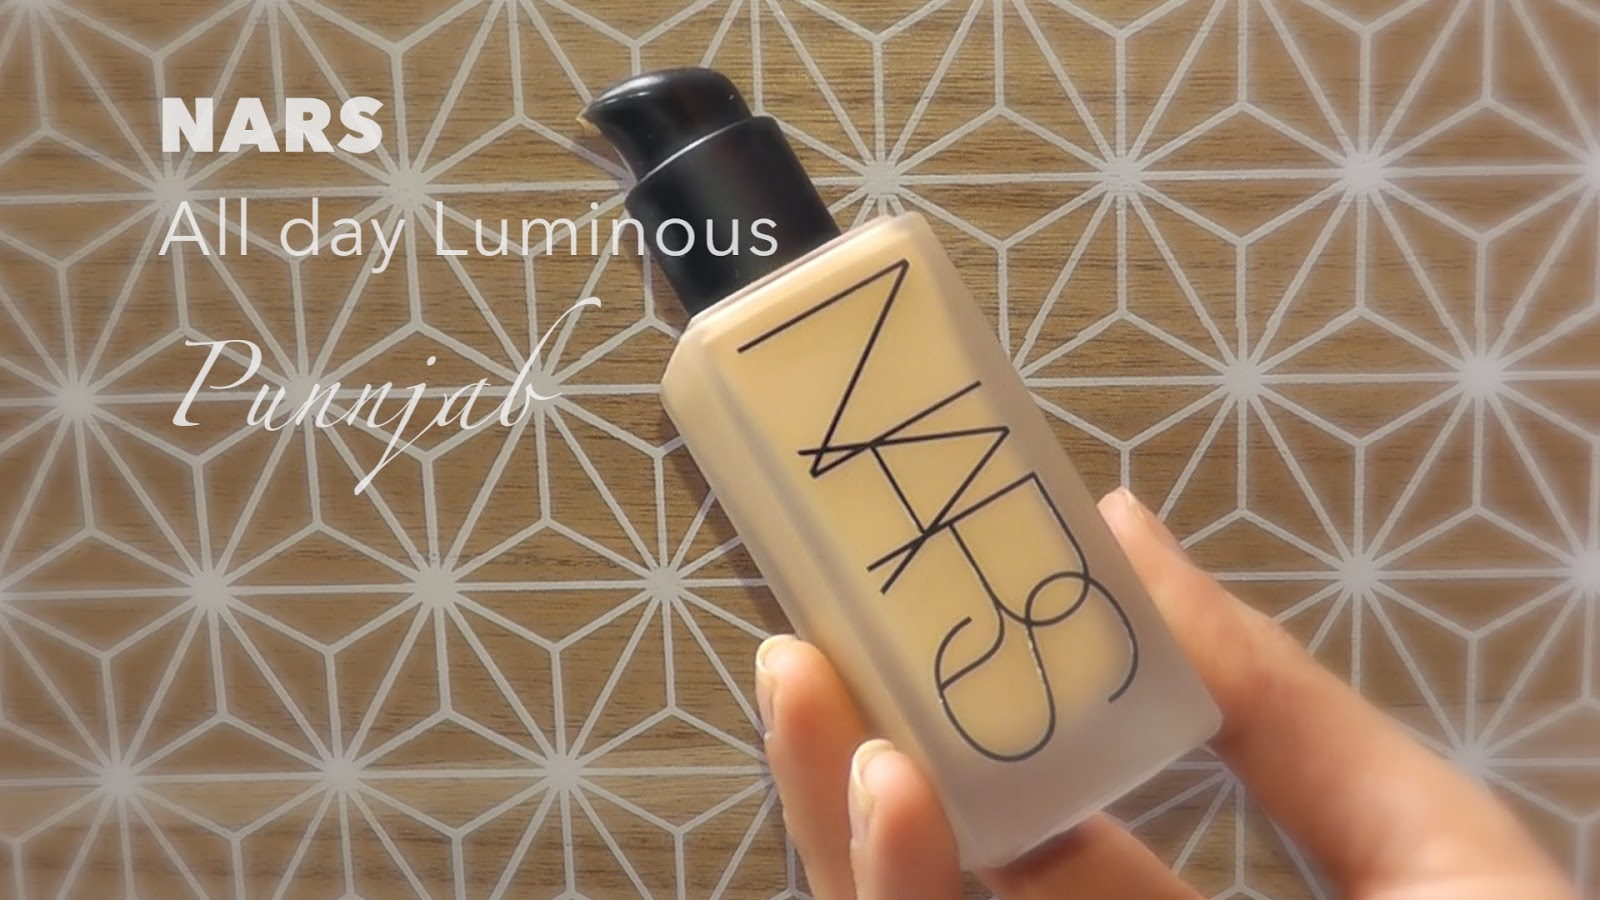 nars all day luminous punjab